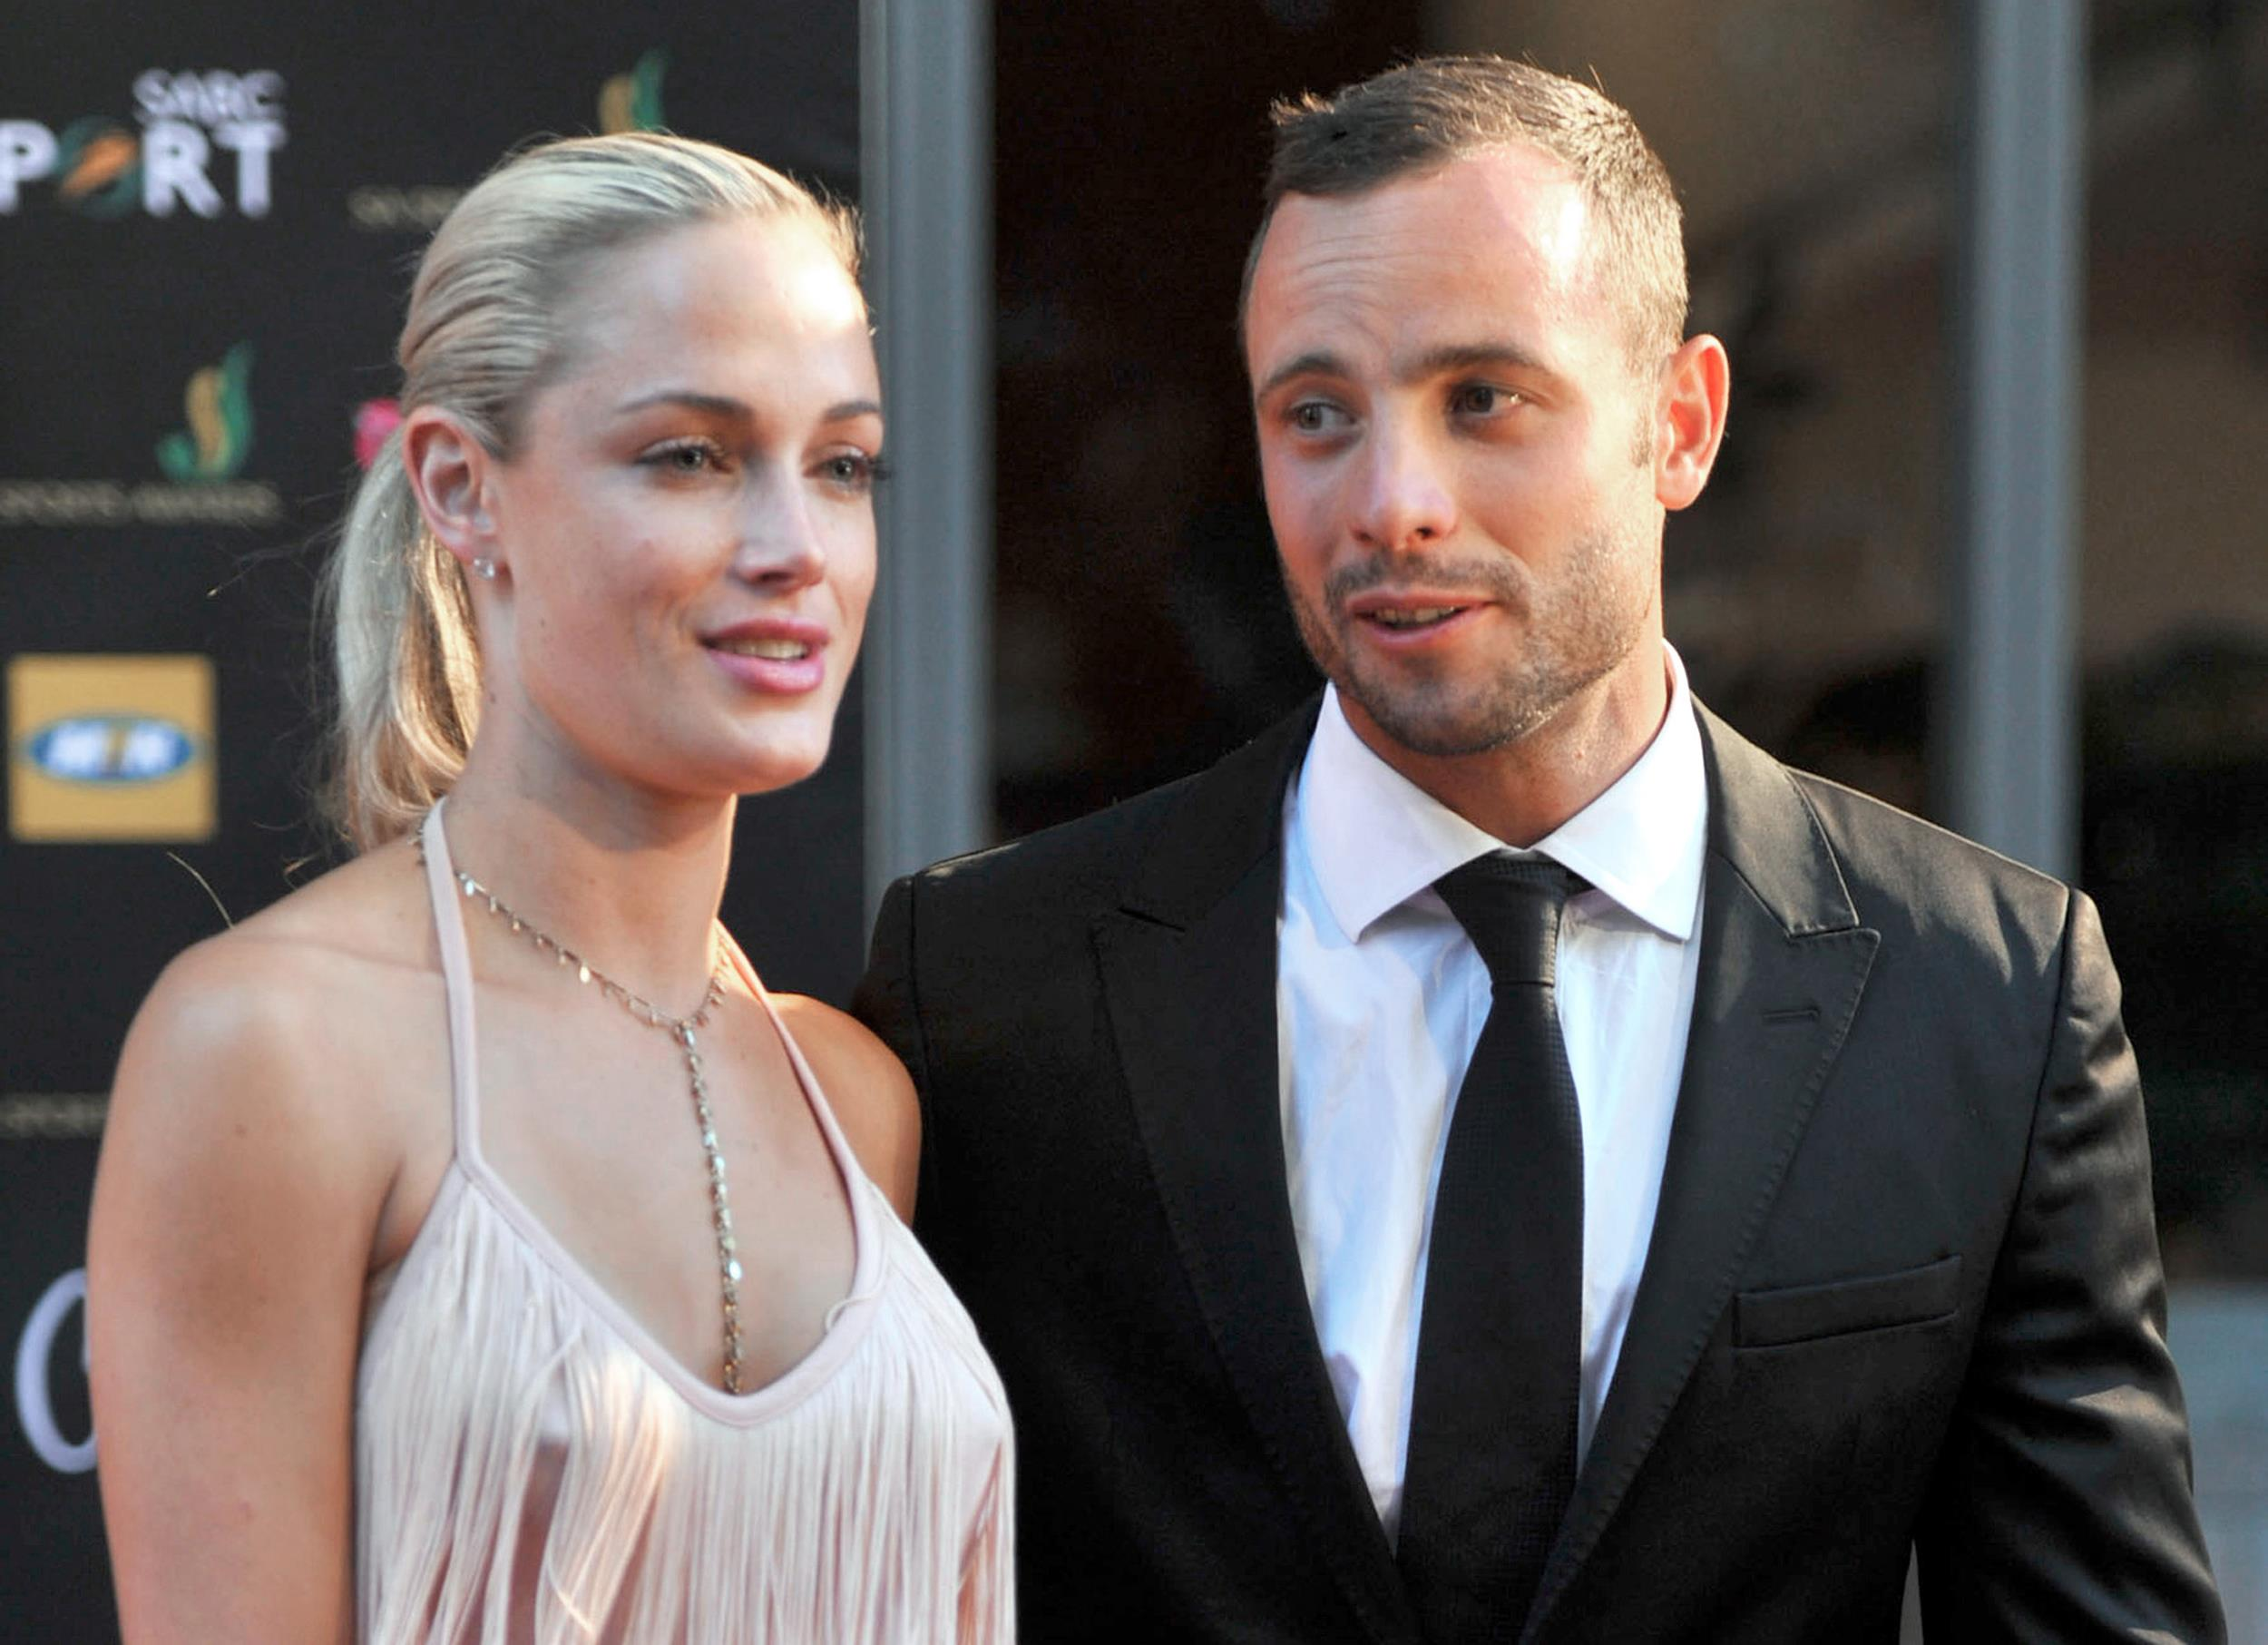 Image: South Africa's Olympic sprint star Oscar Pistorius and his model girlfriend Reeva Steenkamp